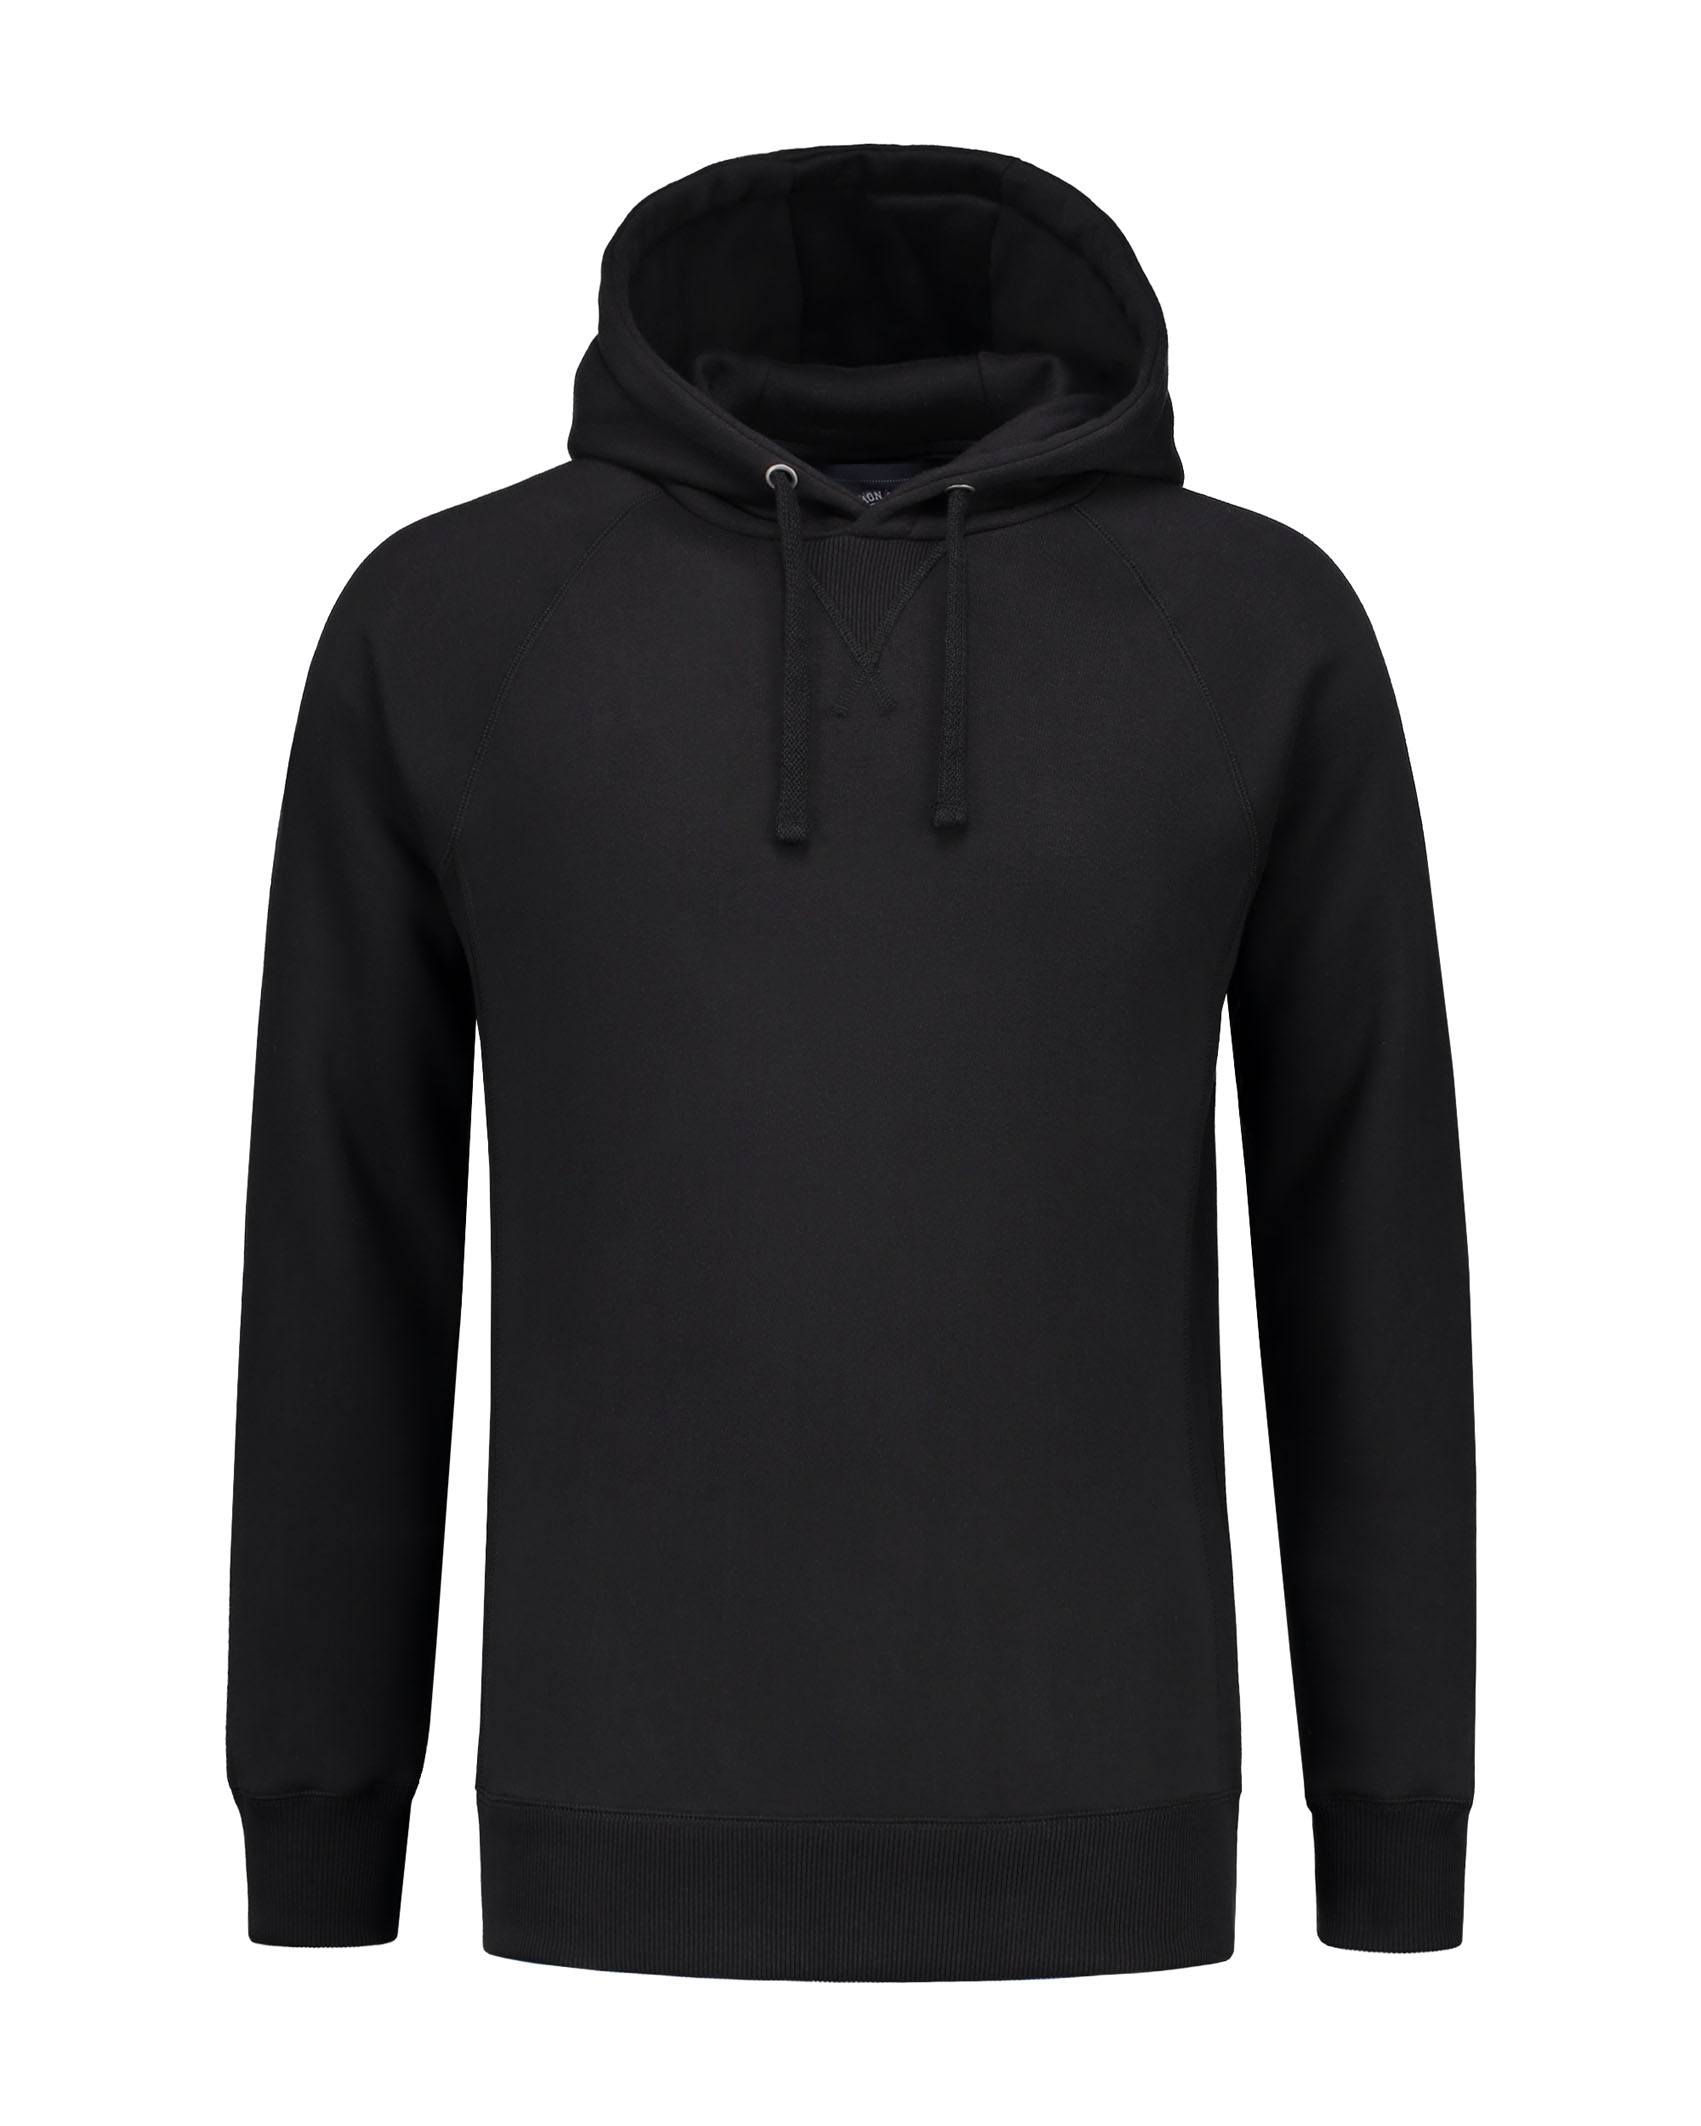 L&S Heavy Sweater Hooded Raglan for him